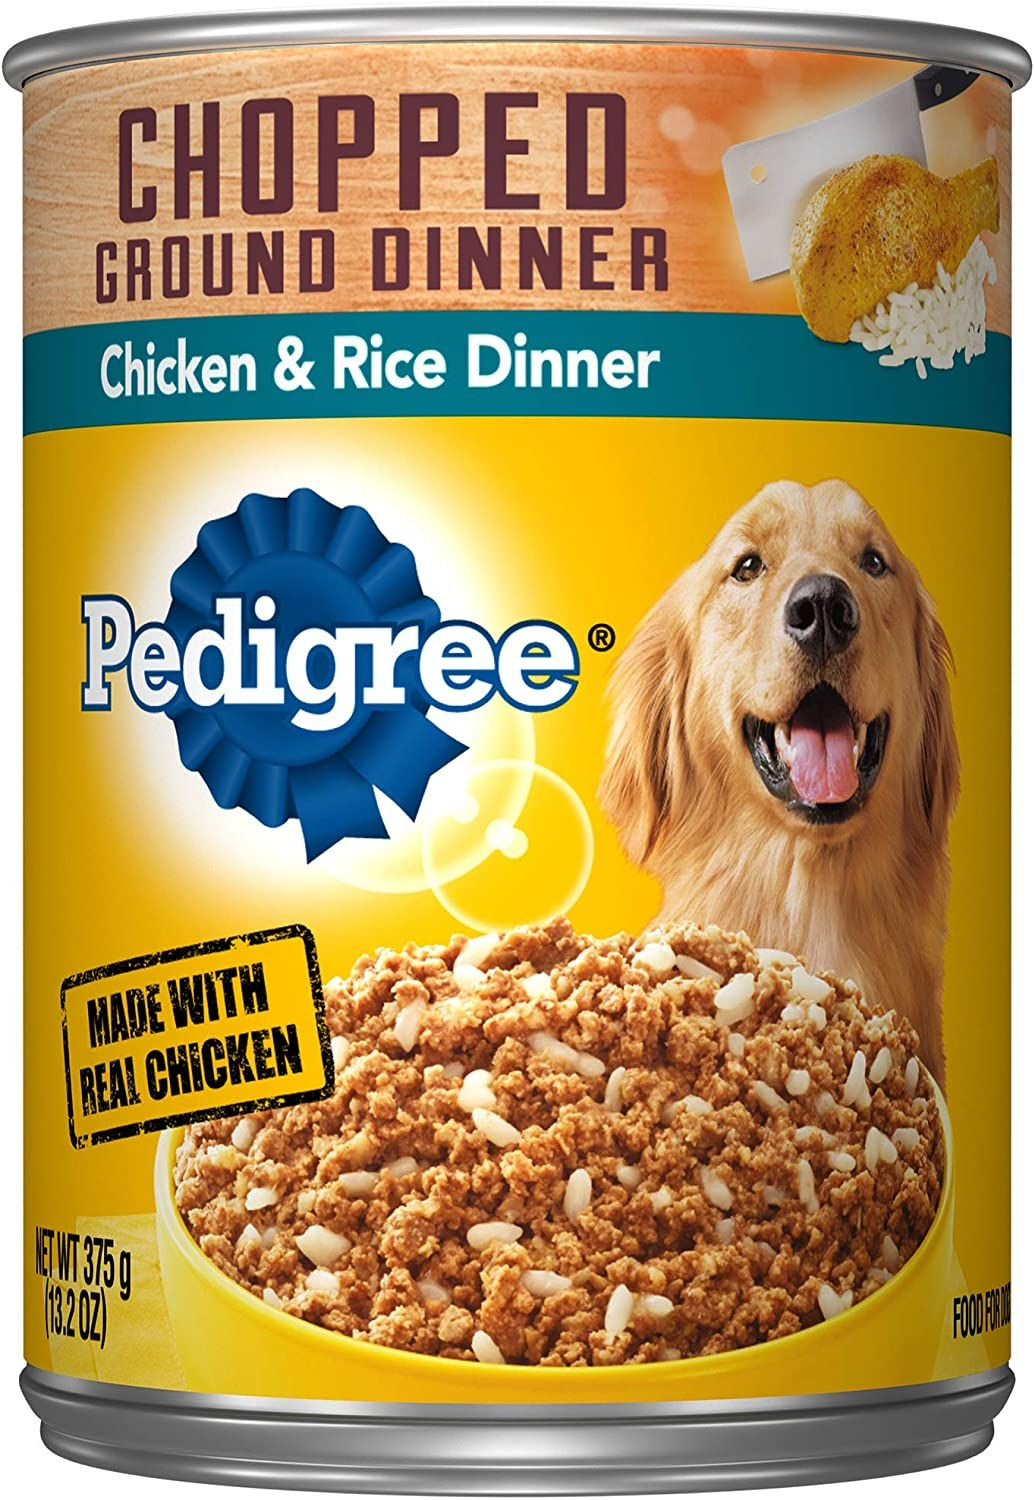 pedigree chopped ground dinner wet dog food chicken and rice